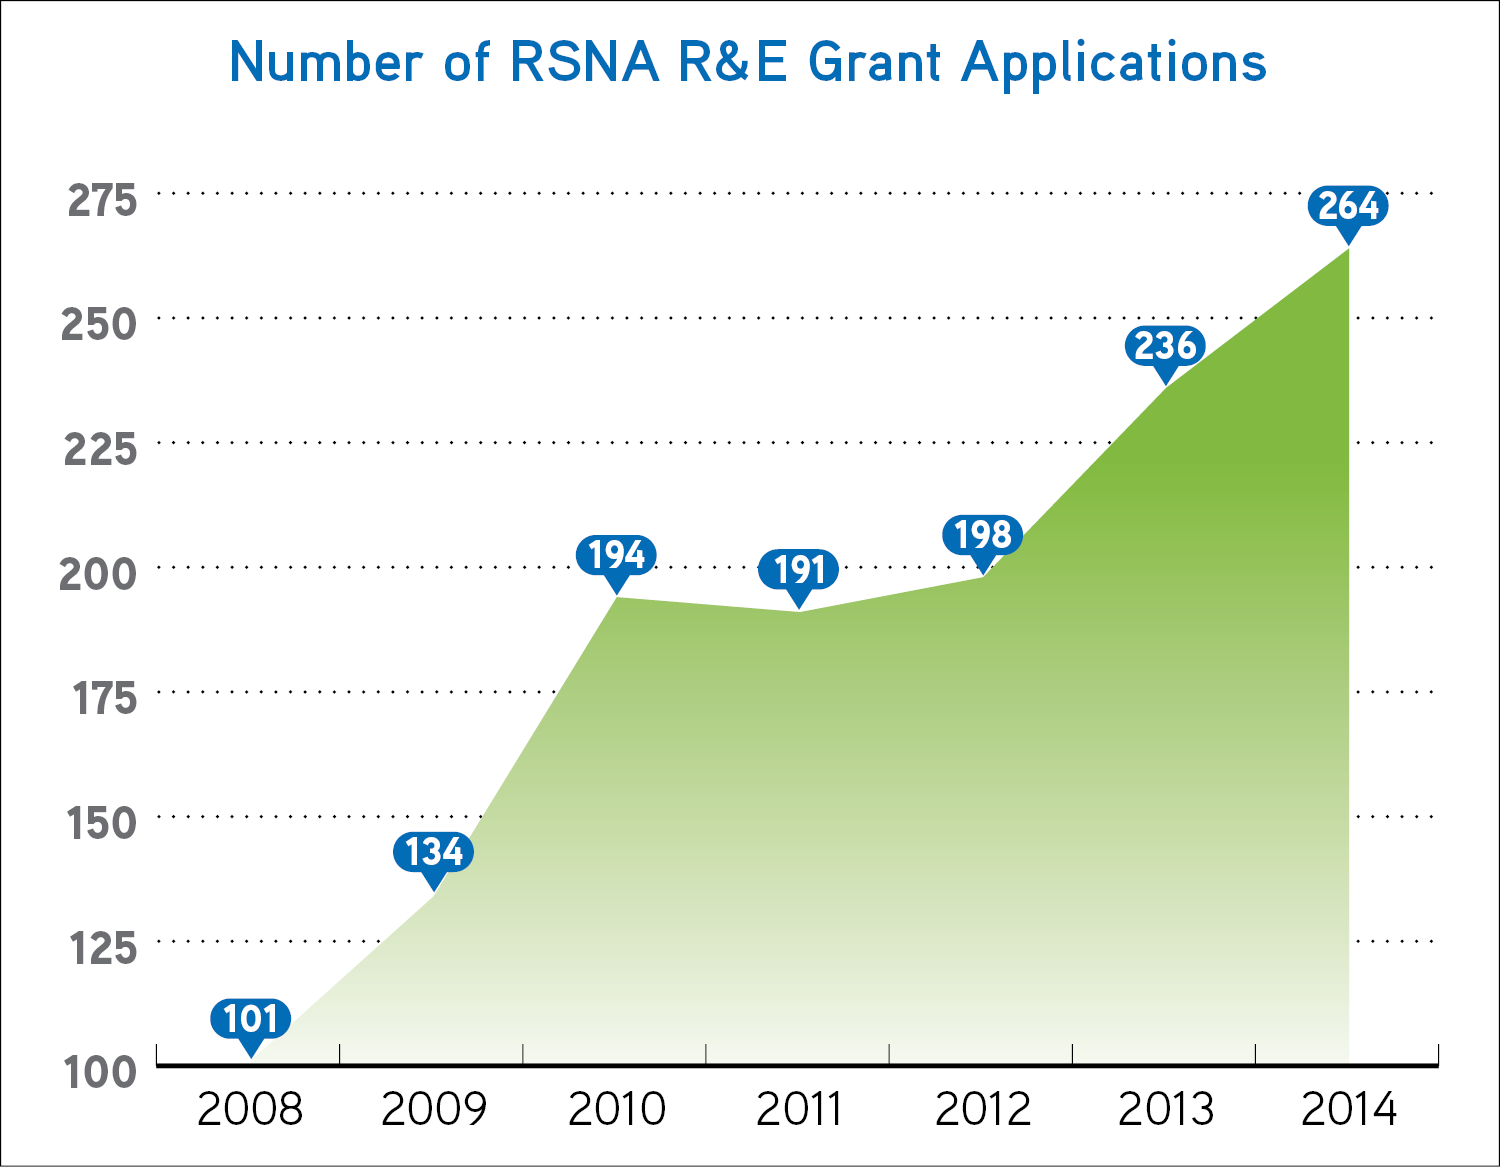 Number of RSNA R&E Grant Applications